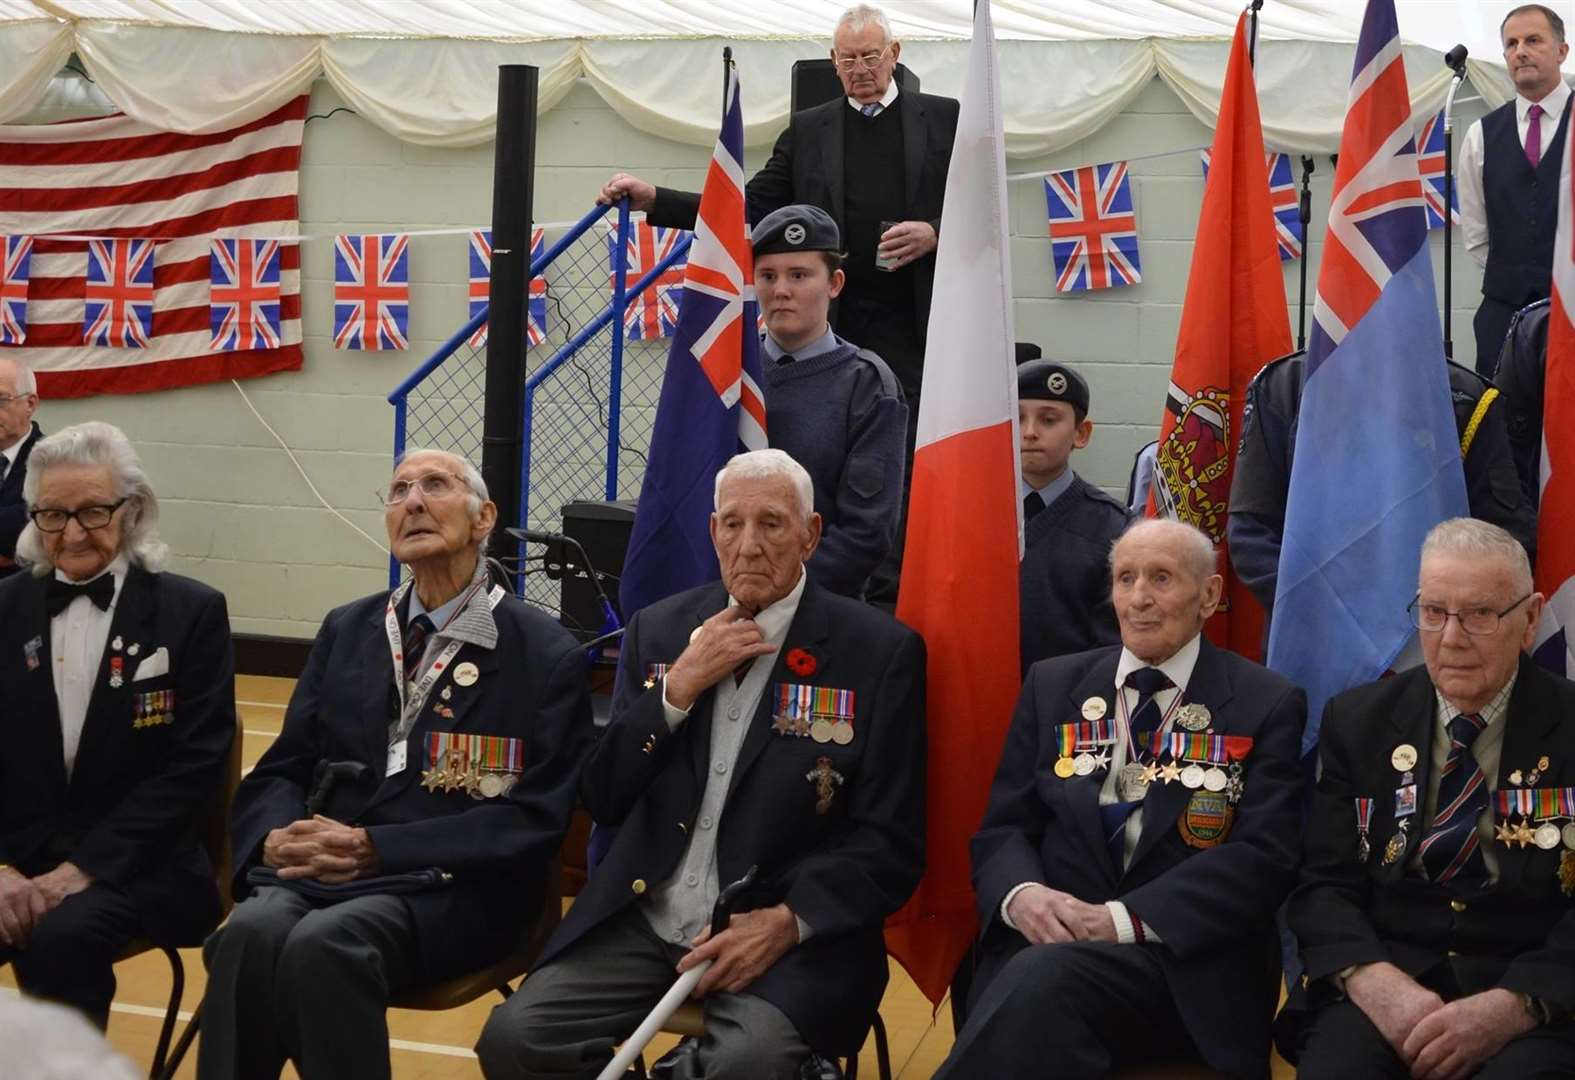 Thanksgiving party in Holbeach for World War II veterans